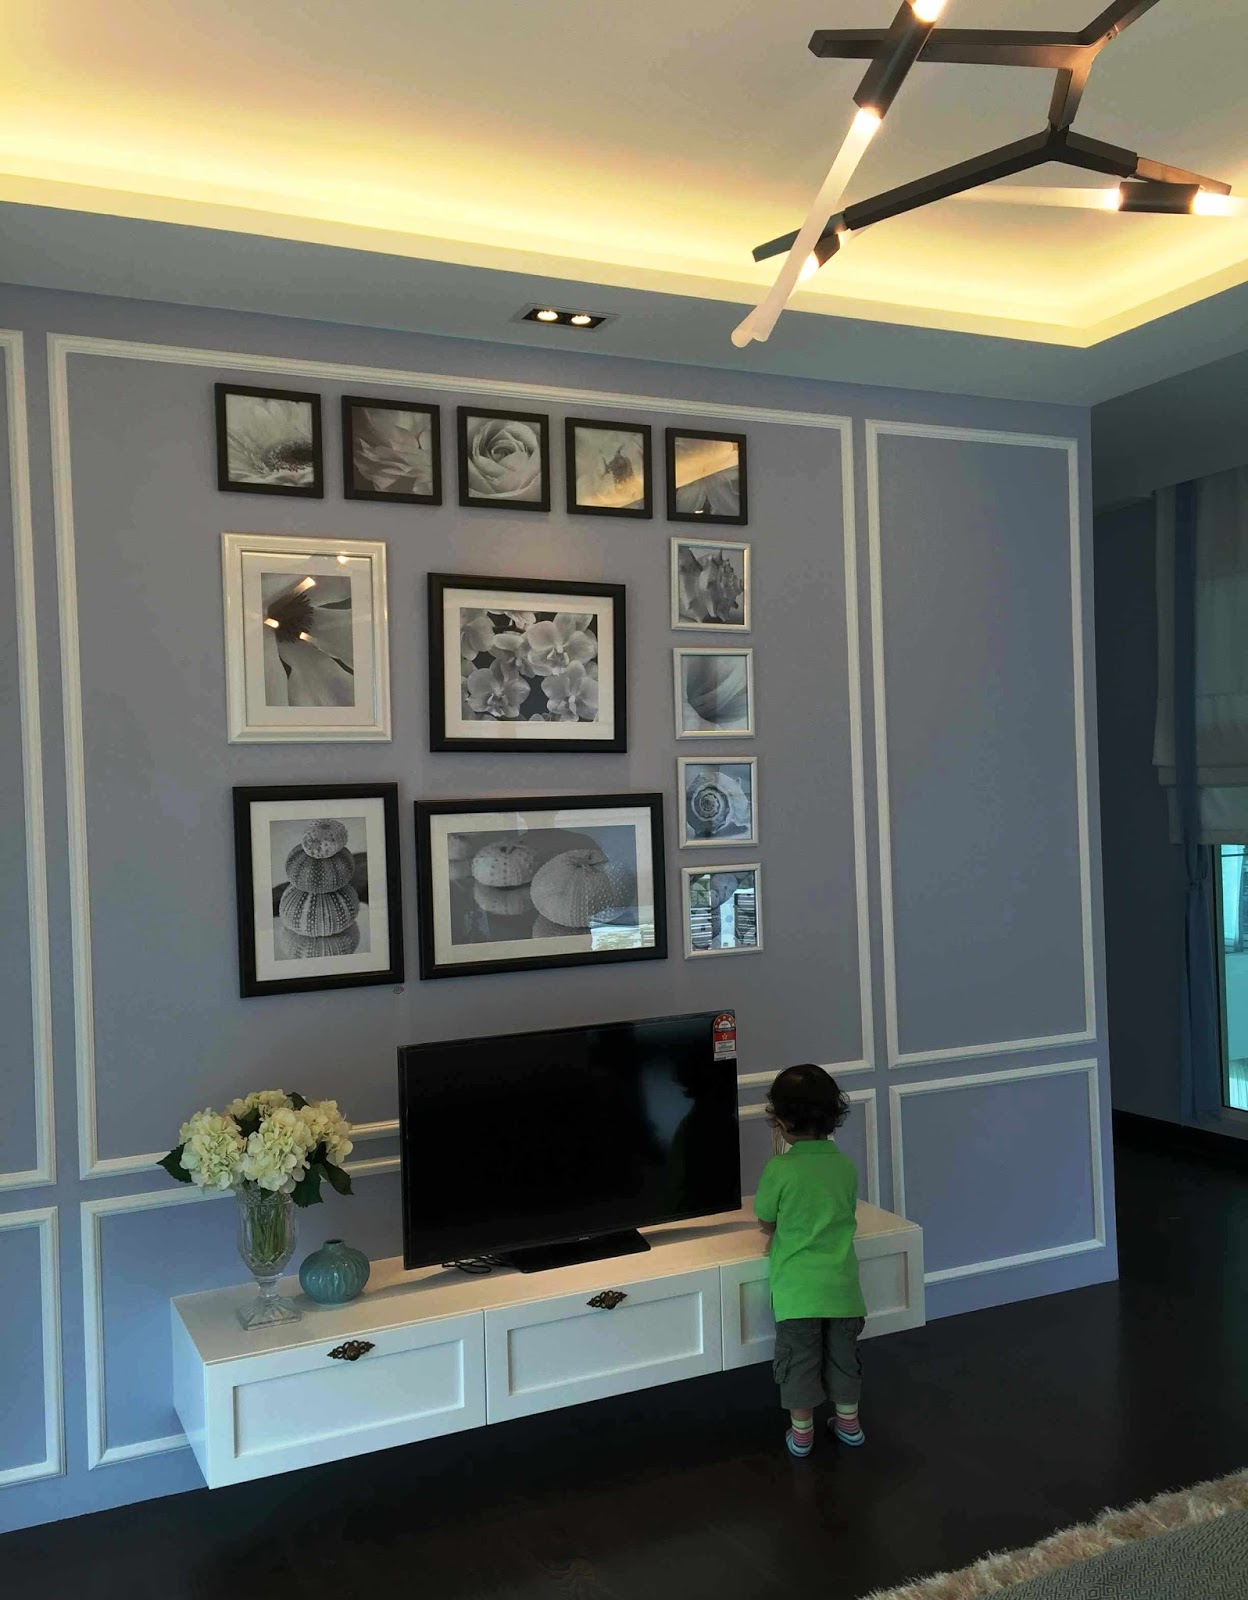 Di diy wainscoting dining room - Wainscoting In Combination With Black And White Frames And The Simple Tv Panel Minimal But So Pleasing To The Eyes